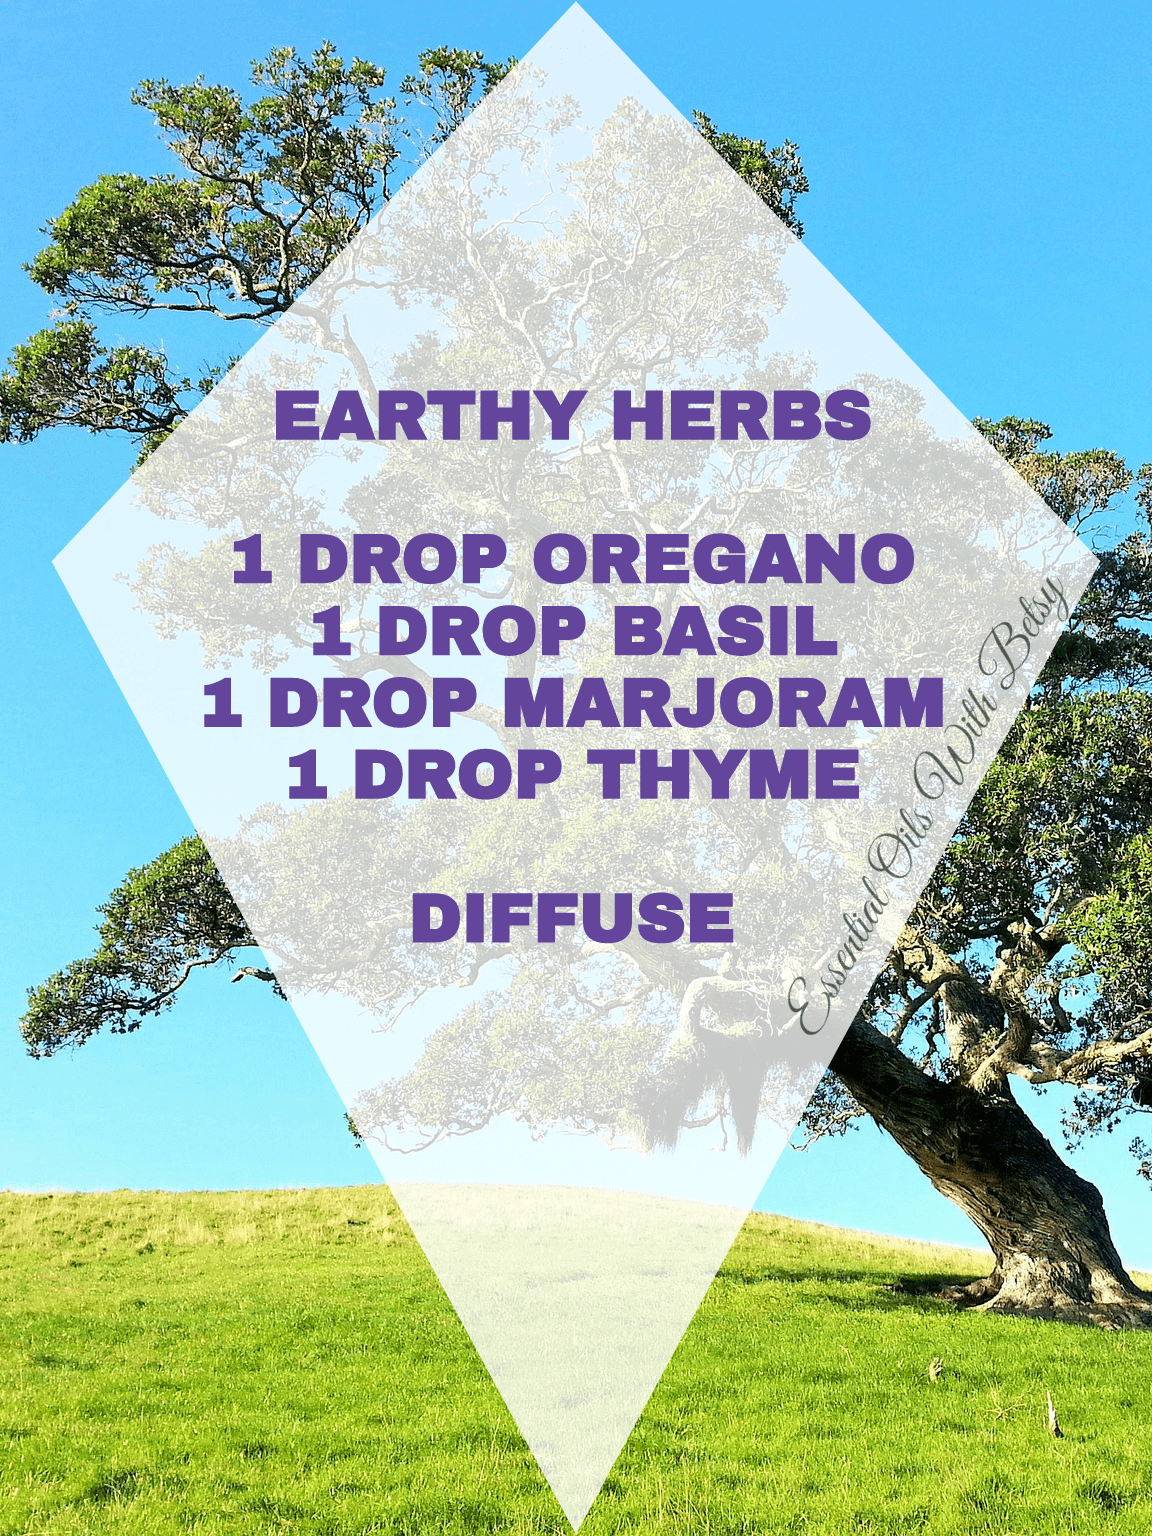 15 BRAND NEW ESSENTIAL OIL BLENDS EARTHY HERBS 1 DROP OREGANO 1 DROP BASIL 1 DROP MARJORAM 1 DROP THYME DIFFUSE